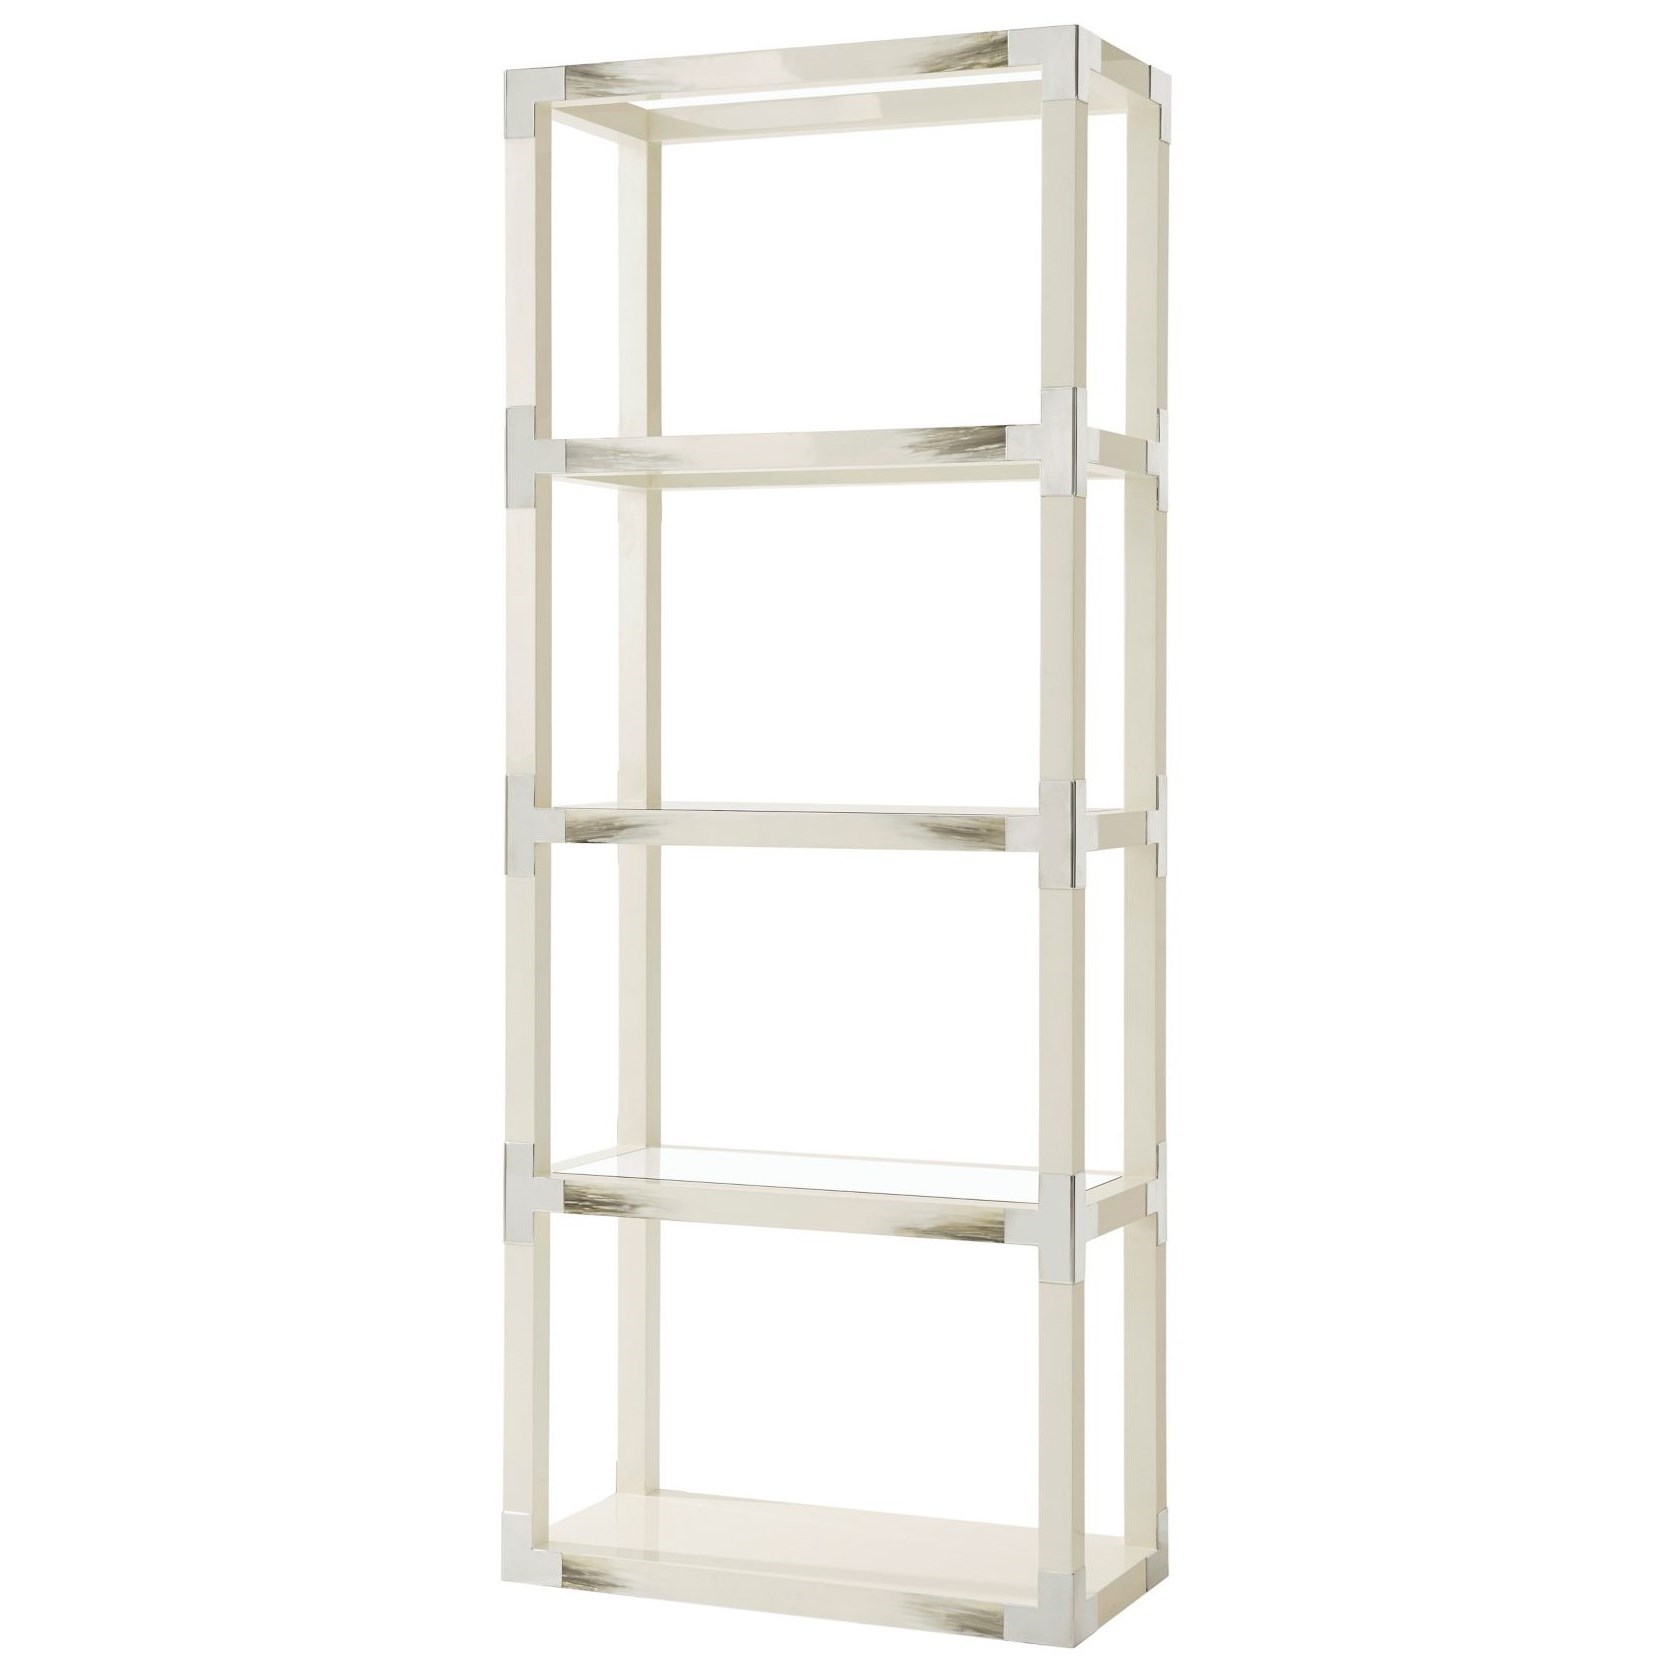 Vanucci Eclectics Cutting Edge Etagere by Theodore Alexander at Baer's Furniture